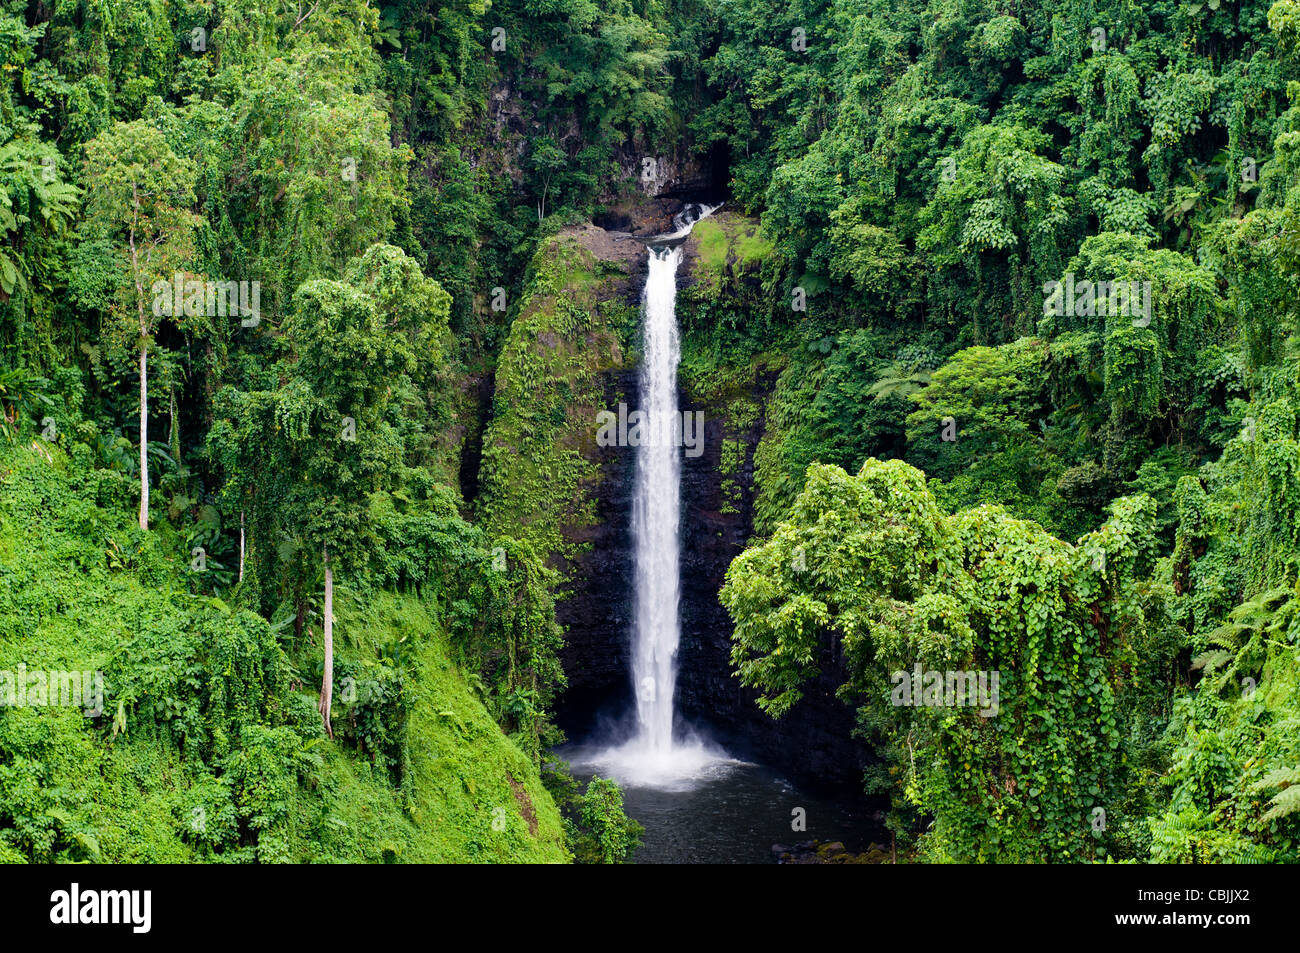 Water fall surround by lush vegetation, Samoa - Stock Image